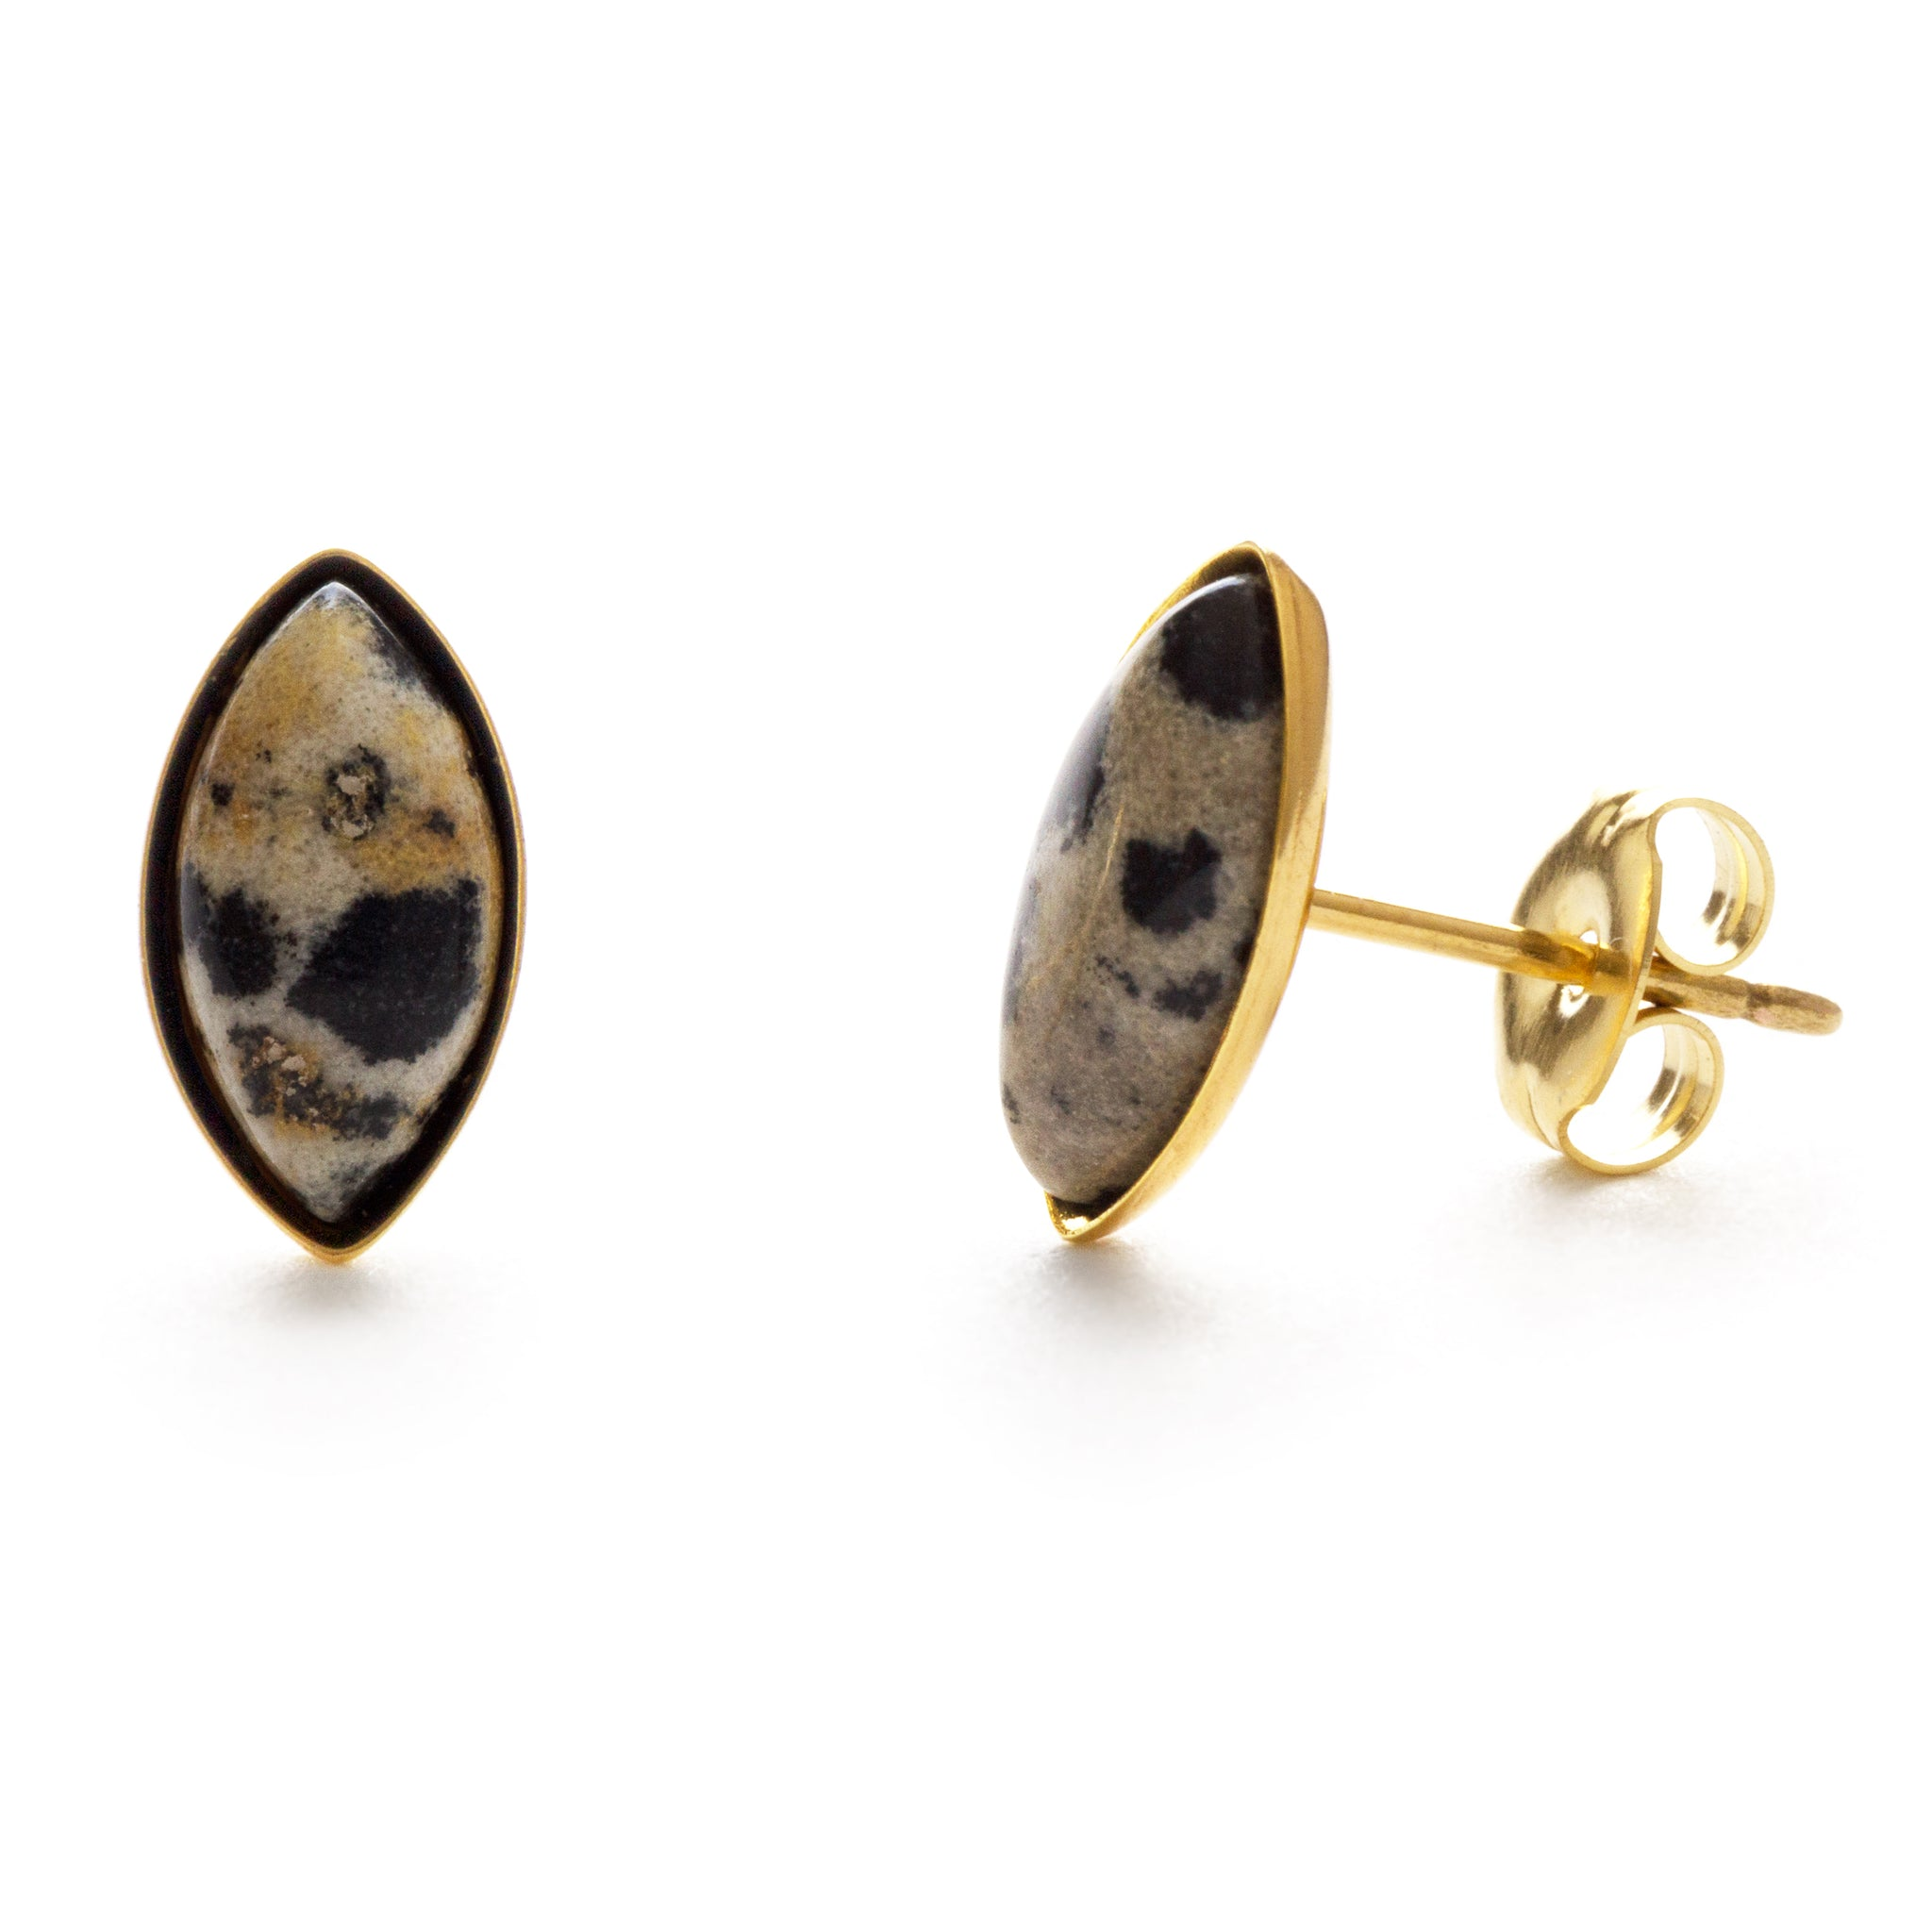 Navette Stone Stud Earrings